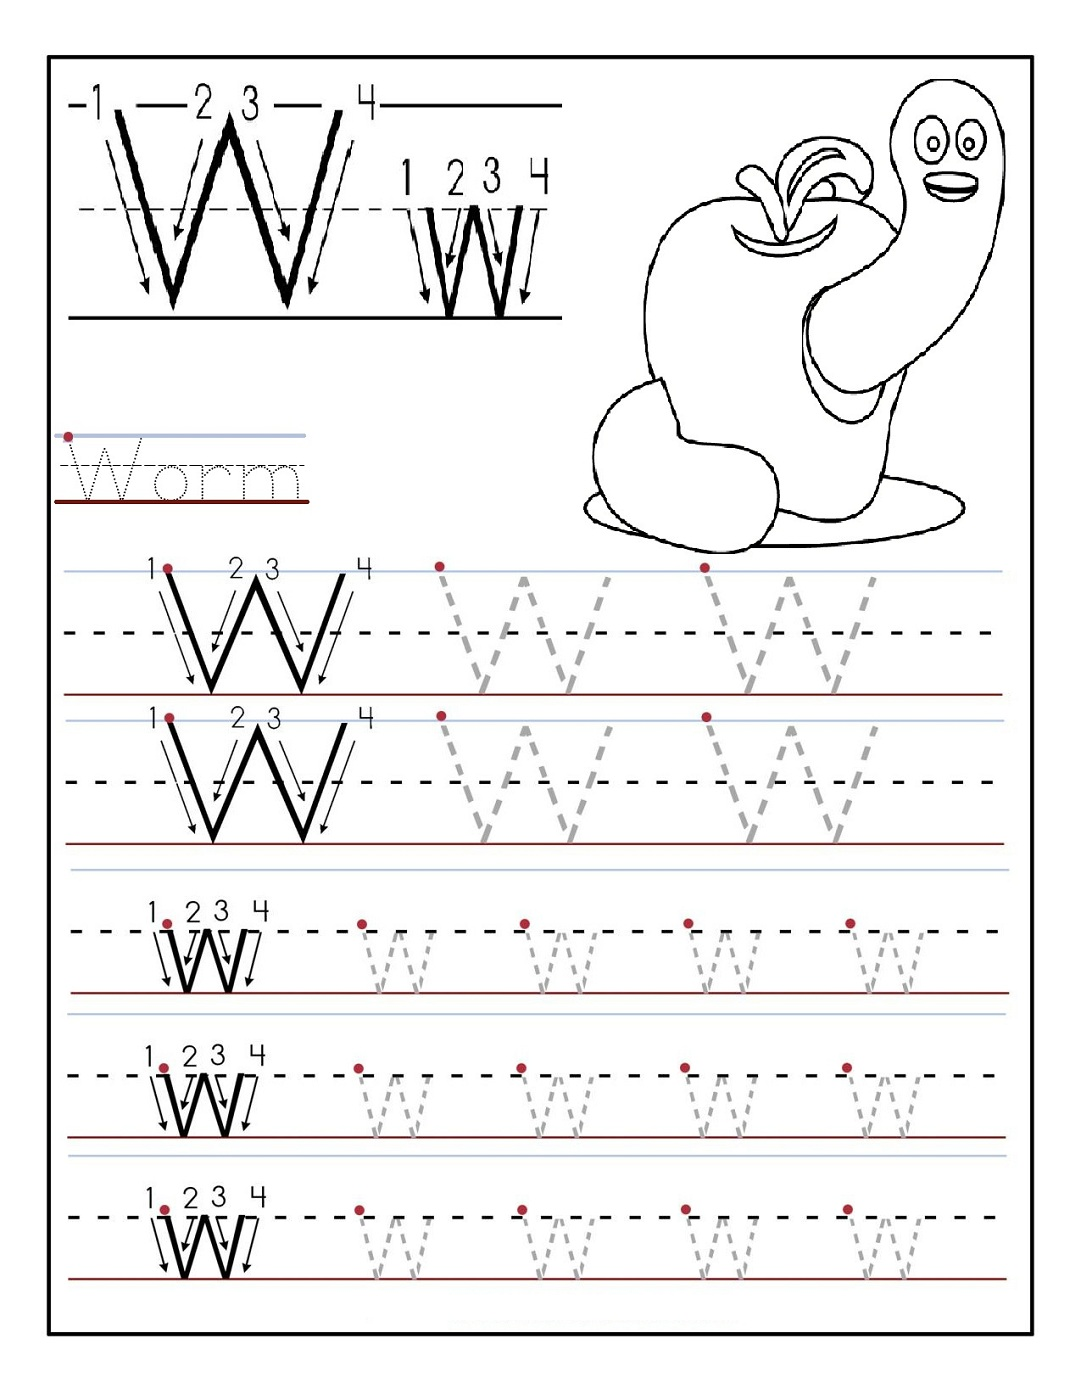 Hindi Alphabet and Letters Writing Practice Worksheets